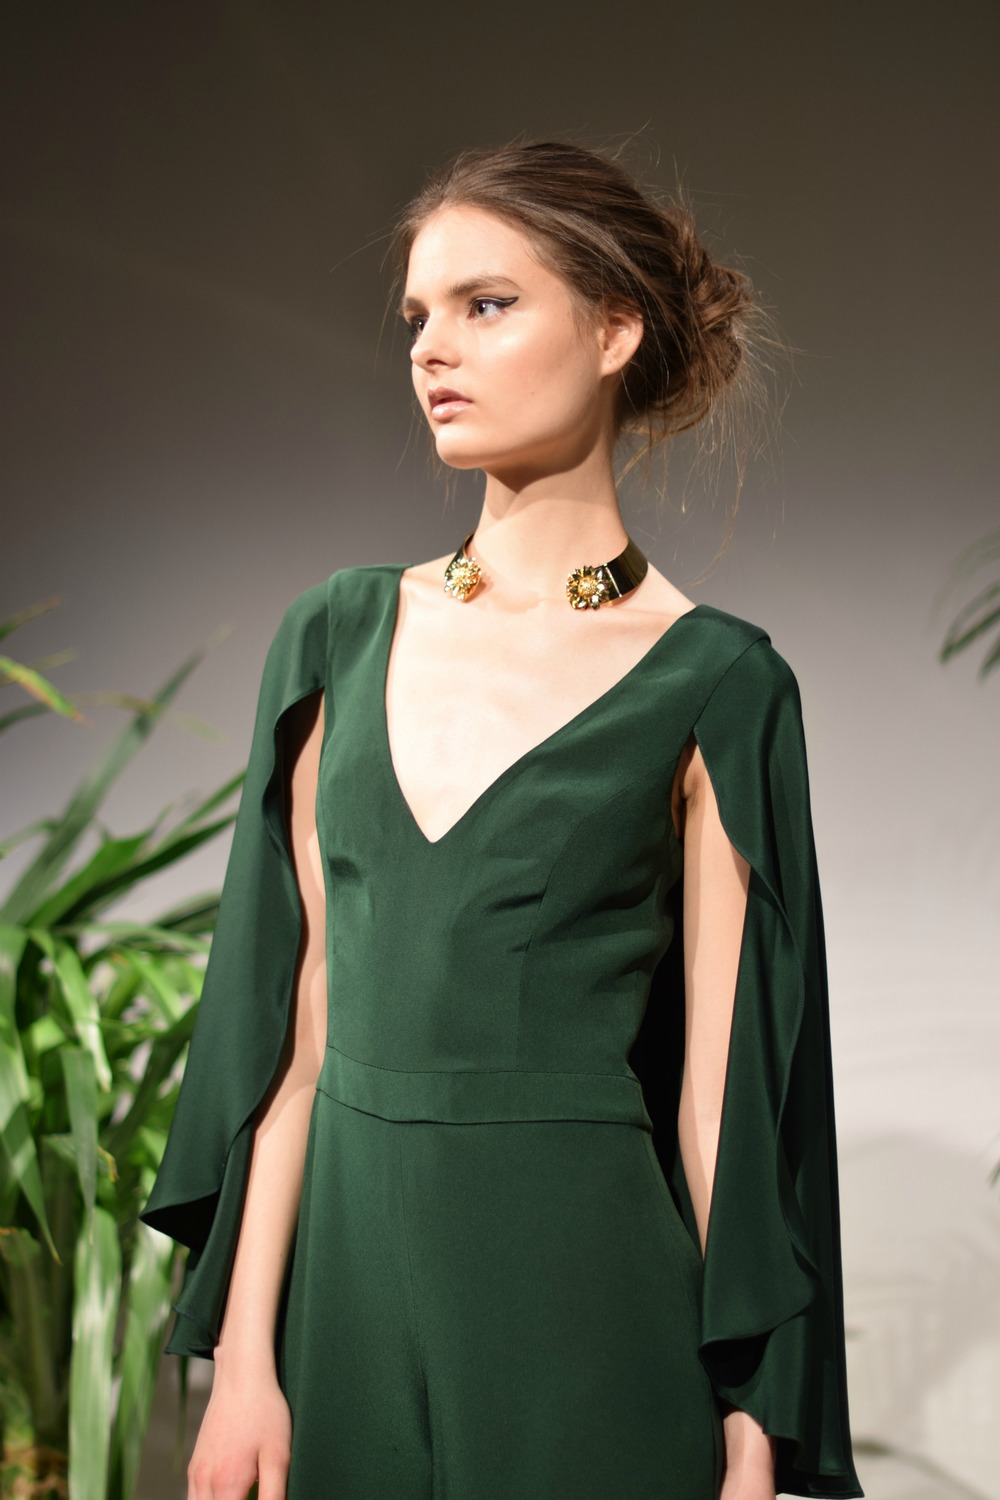 NYFW Jay Godfrey Fashion Presentation Fall:Winter 2016 Louboutins & Love Fashion Blog Esther Santer NYC Street Style Runway Models Collection Press Coverage Photos Details Dress Gown Beautiful Gorgeous Stunning Pretty Shop New York City Celebrities 11.jpg